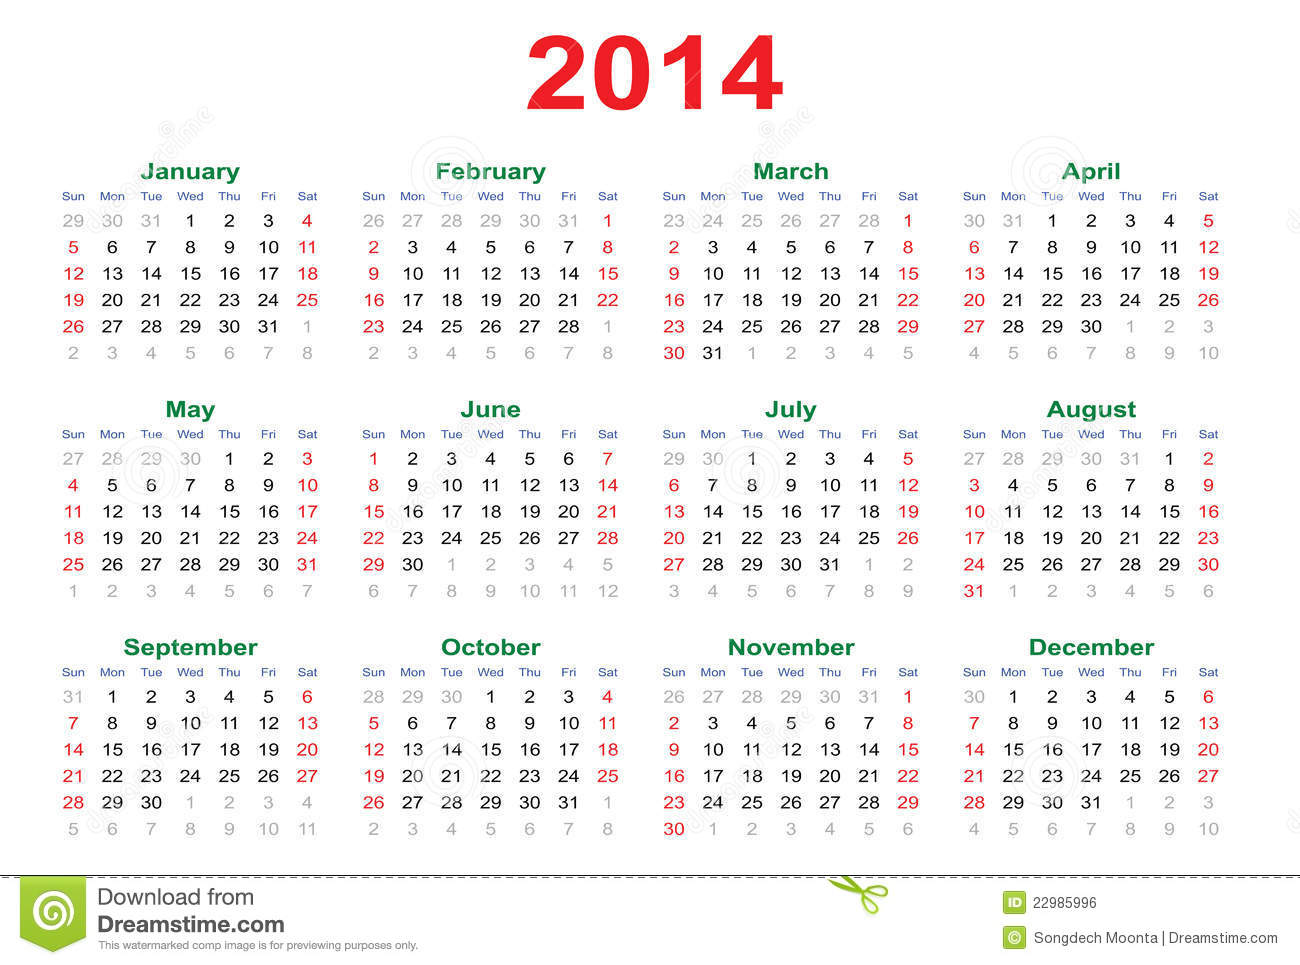 Simple Calendar for 2014, an illustration. By Songdech Moonta .